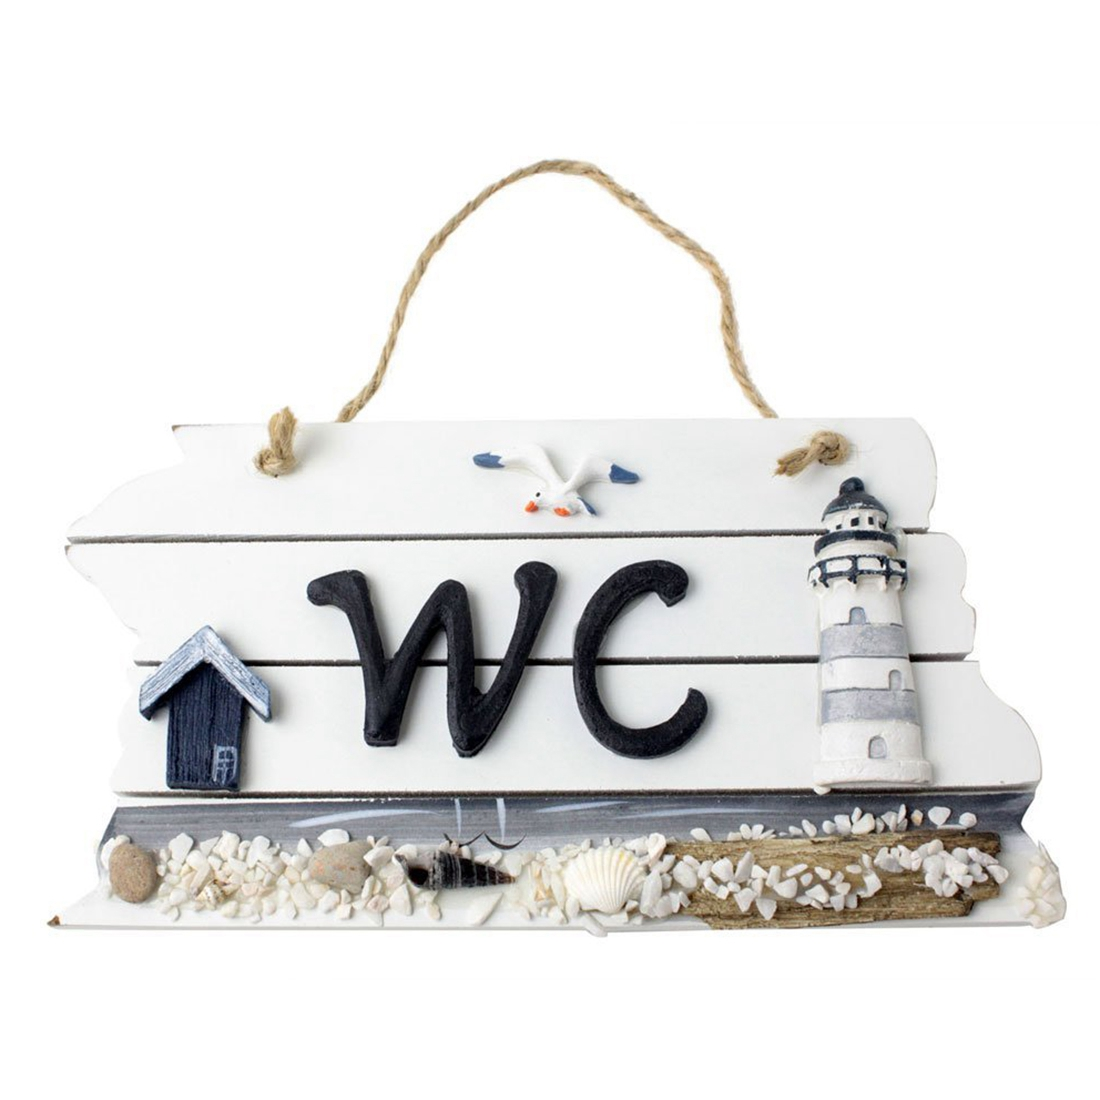 New Mediterranean Style Nordic Wooden WC Shingle Doorplate/Plaque/Sign image